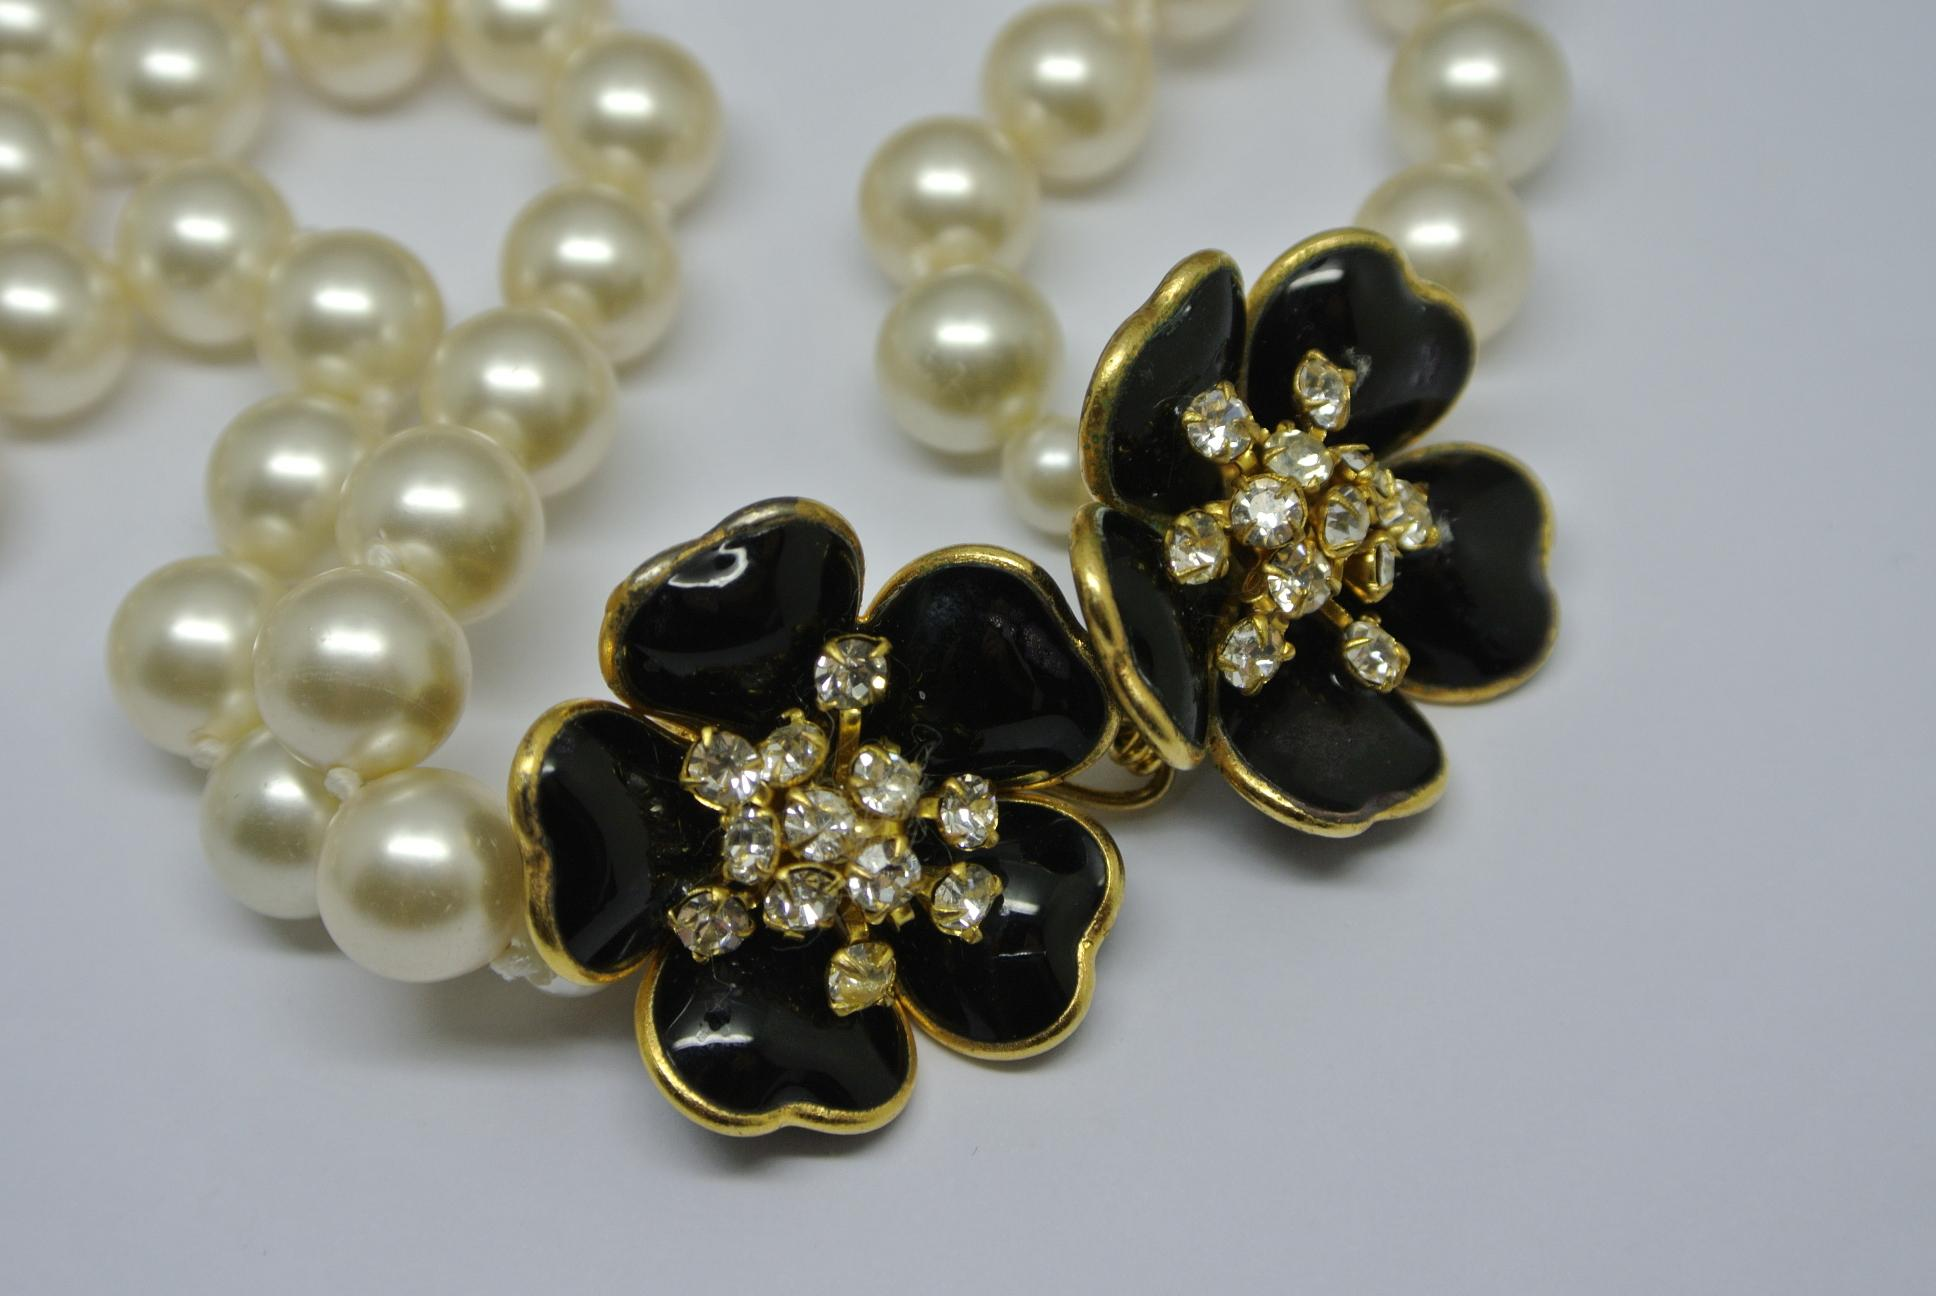 8fe24c9b592 Chanel Unsigned 1950s Gripoix Black Flower Faux Pearl Necklace Choker  Earrings For Sale at 1stdibs